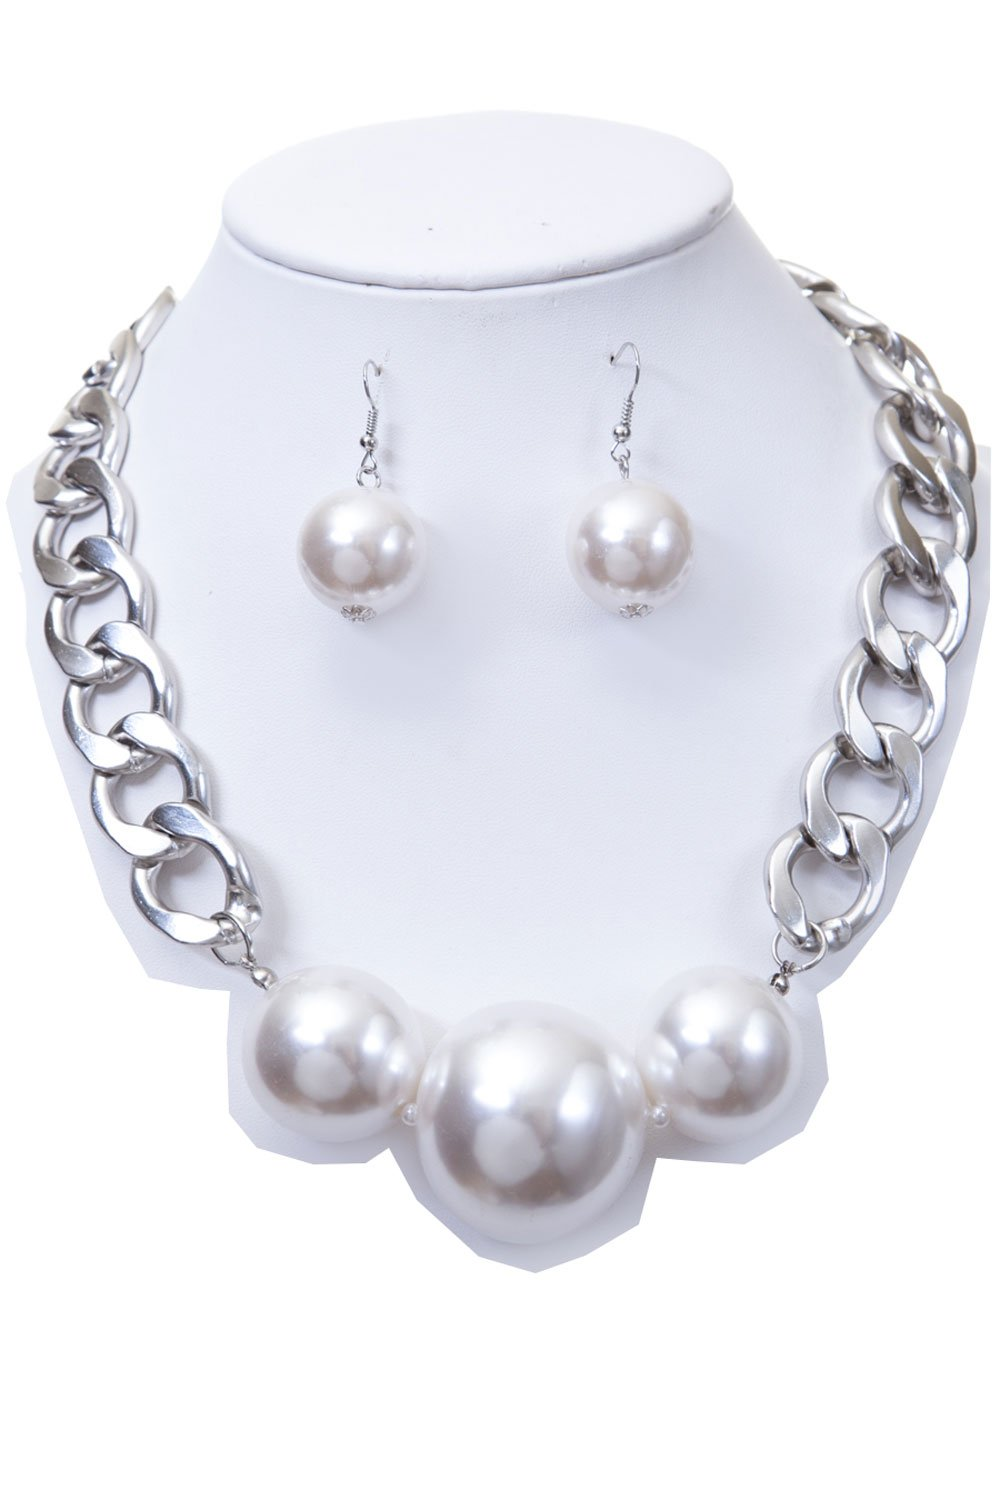 CN0445 - WOMEN'S FASHIONABLE CHAIN NECKLACE WITH BIG PEARLS AND EARRINGS SET - Designed In USA (SILVER WHITE)